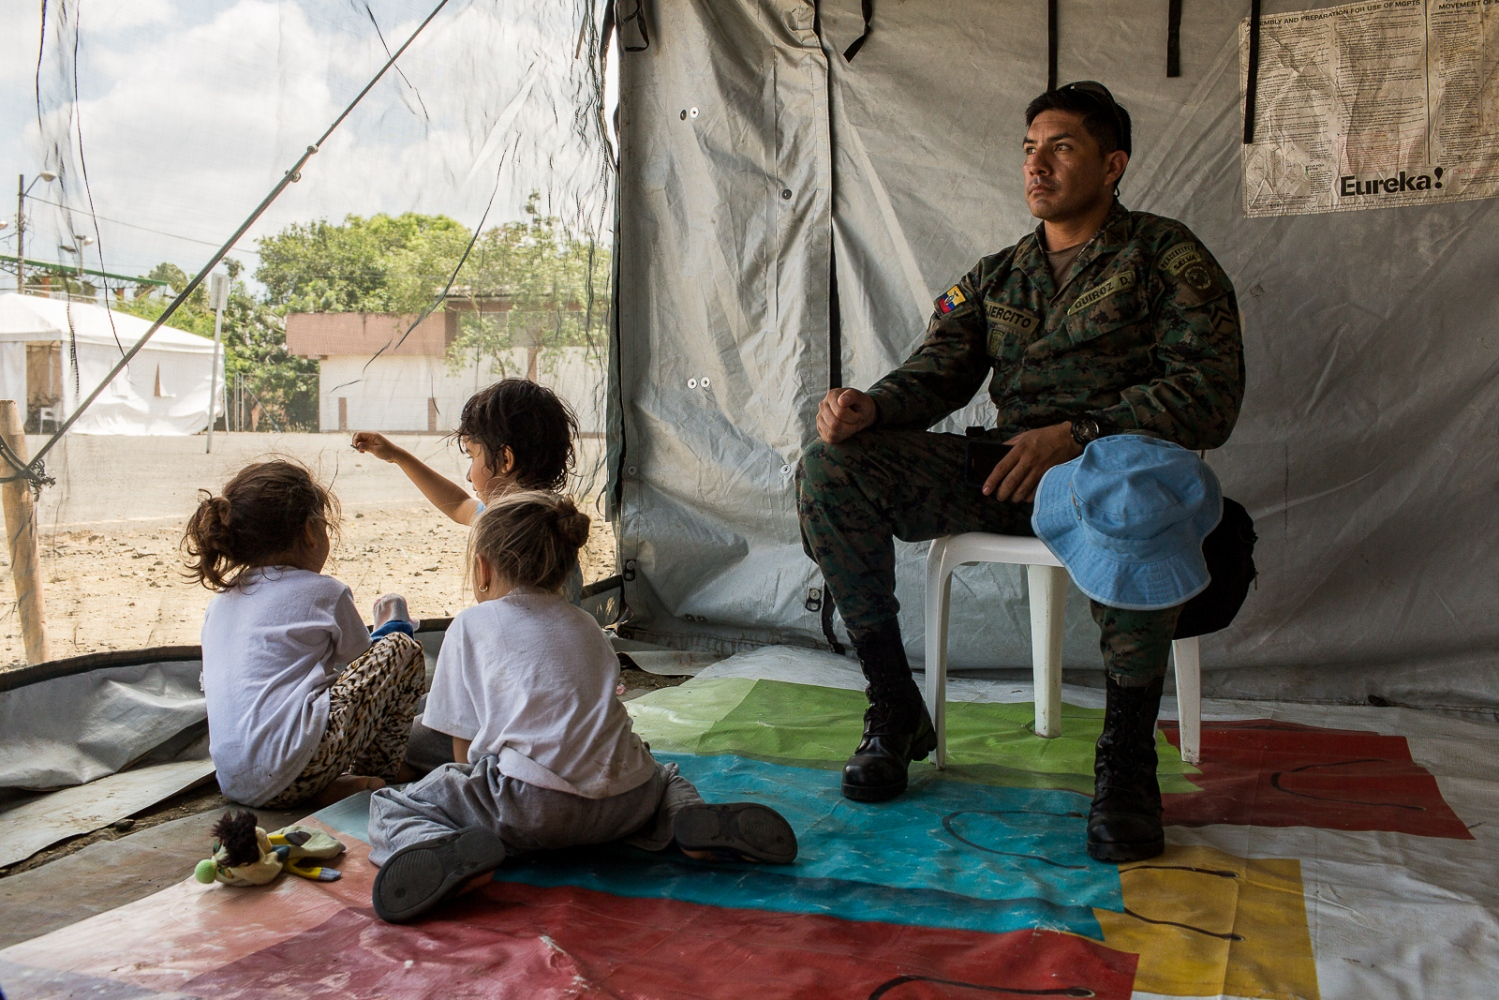 Corporal Quiroz of the Ecuadorian army, looks after some children while their mothers went to collect food on the communal kitchen of the shelter in Portoviejo. The shelters are managed and operated by the army and they try to help the families that live there and that have lost everything on the 16th April earthquake.